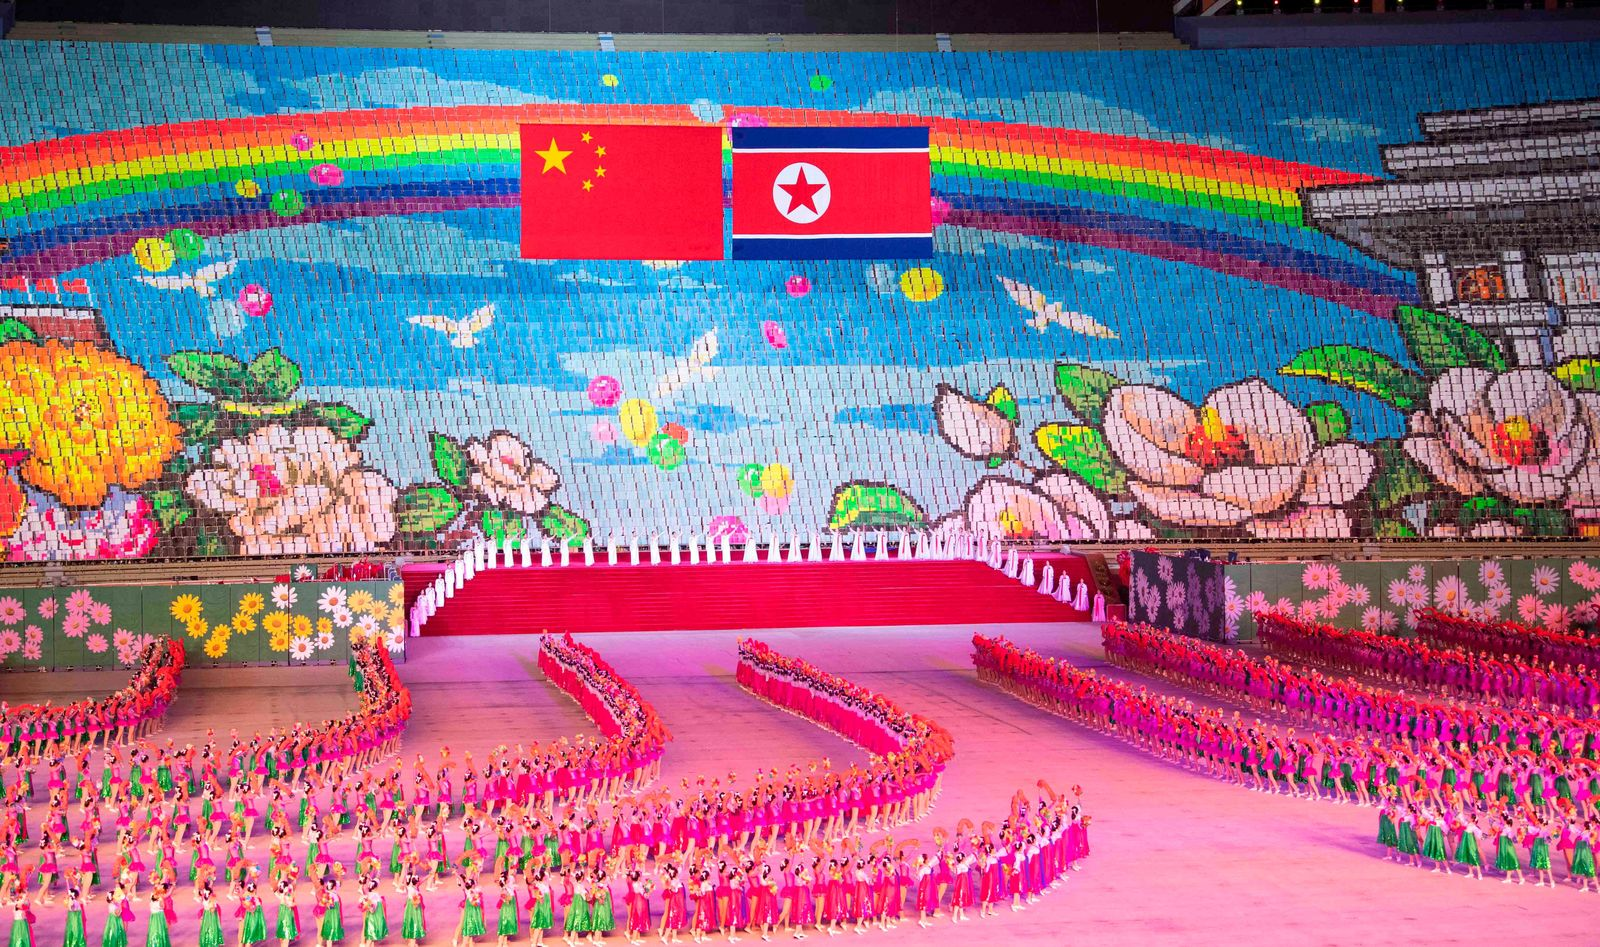 In this Thursday, June 20, 2019, photo released by China's Xinhua News Agency, Chinese, left, and North Korean flags are displayed during a mass gymnastic performance at the May Day Stadium in Pyongyang, North Korea. North Korean leader Kim Jong Un, meeting in Pyongyang with Chinese President Xi Jinping, said Thursday that his country is waiting for a desired response in stalled nuclear talks with the United States. (Shen Hong/Xinhua via AP)